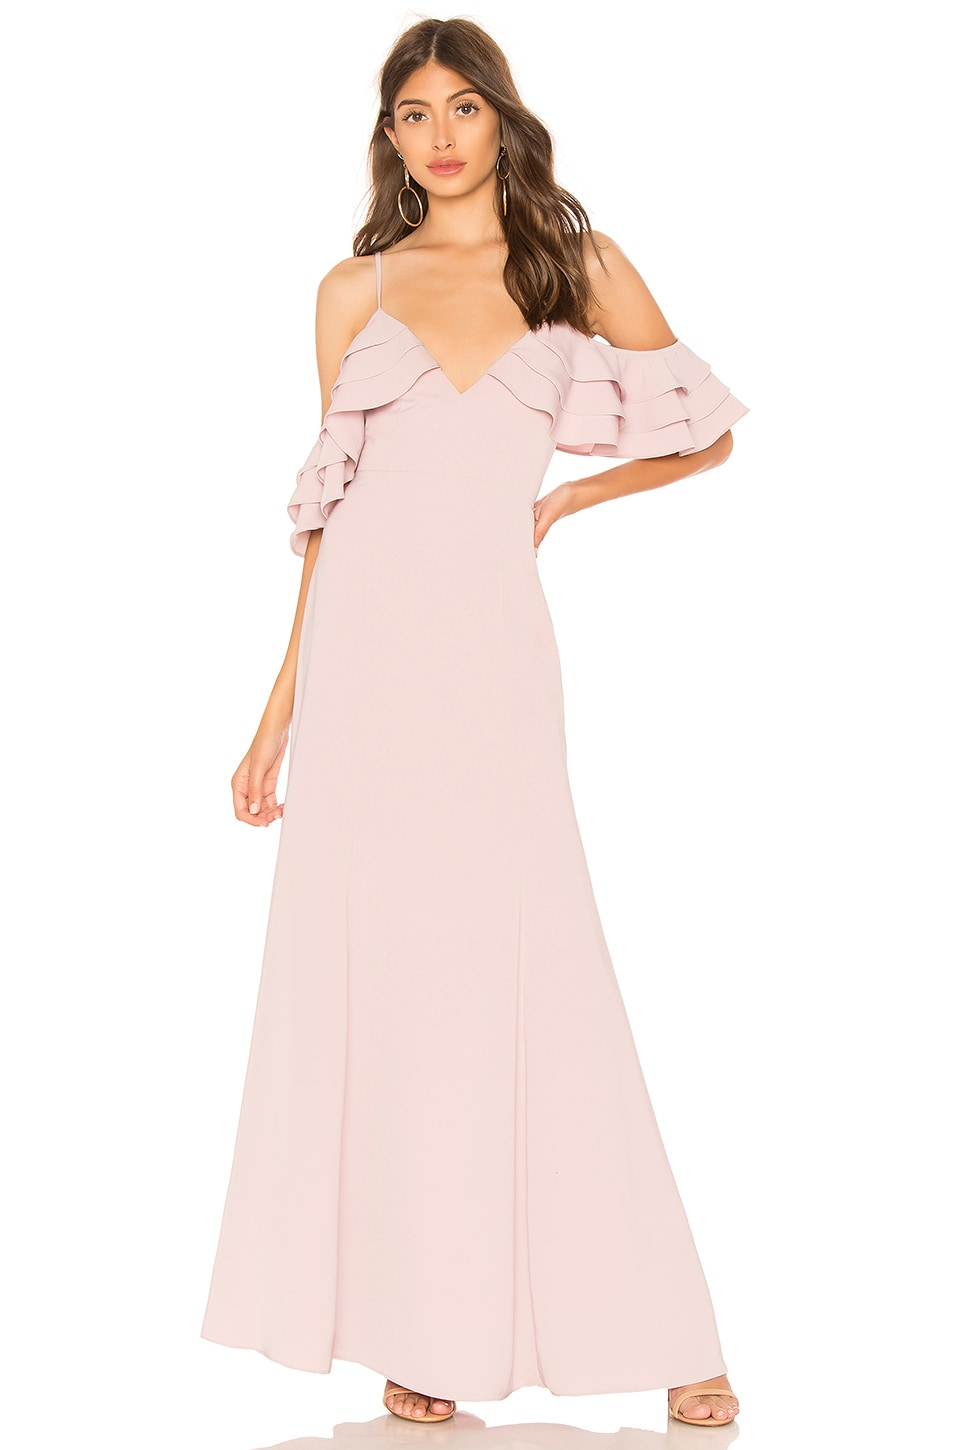 About Us Bell Ruffle Maxi Dress in Mauve